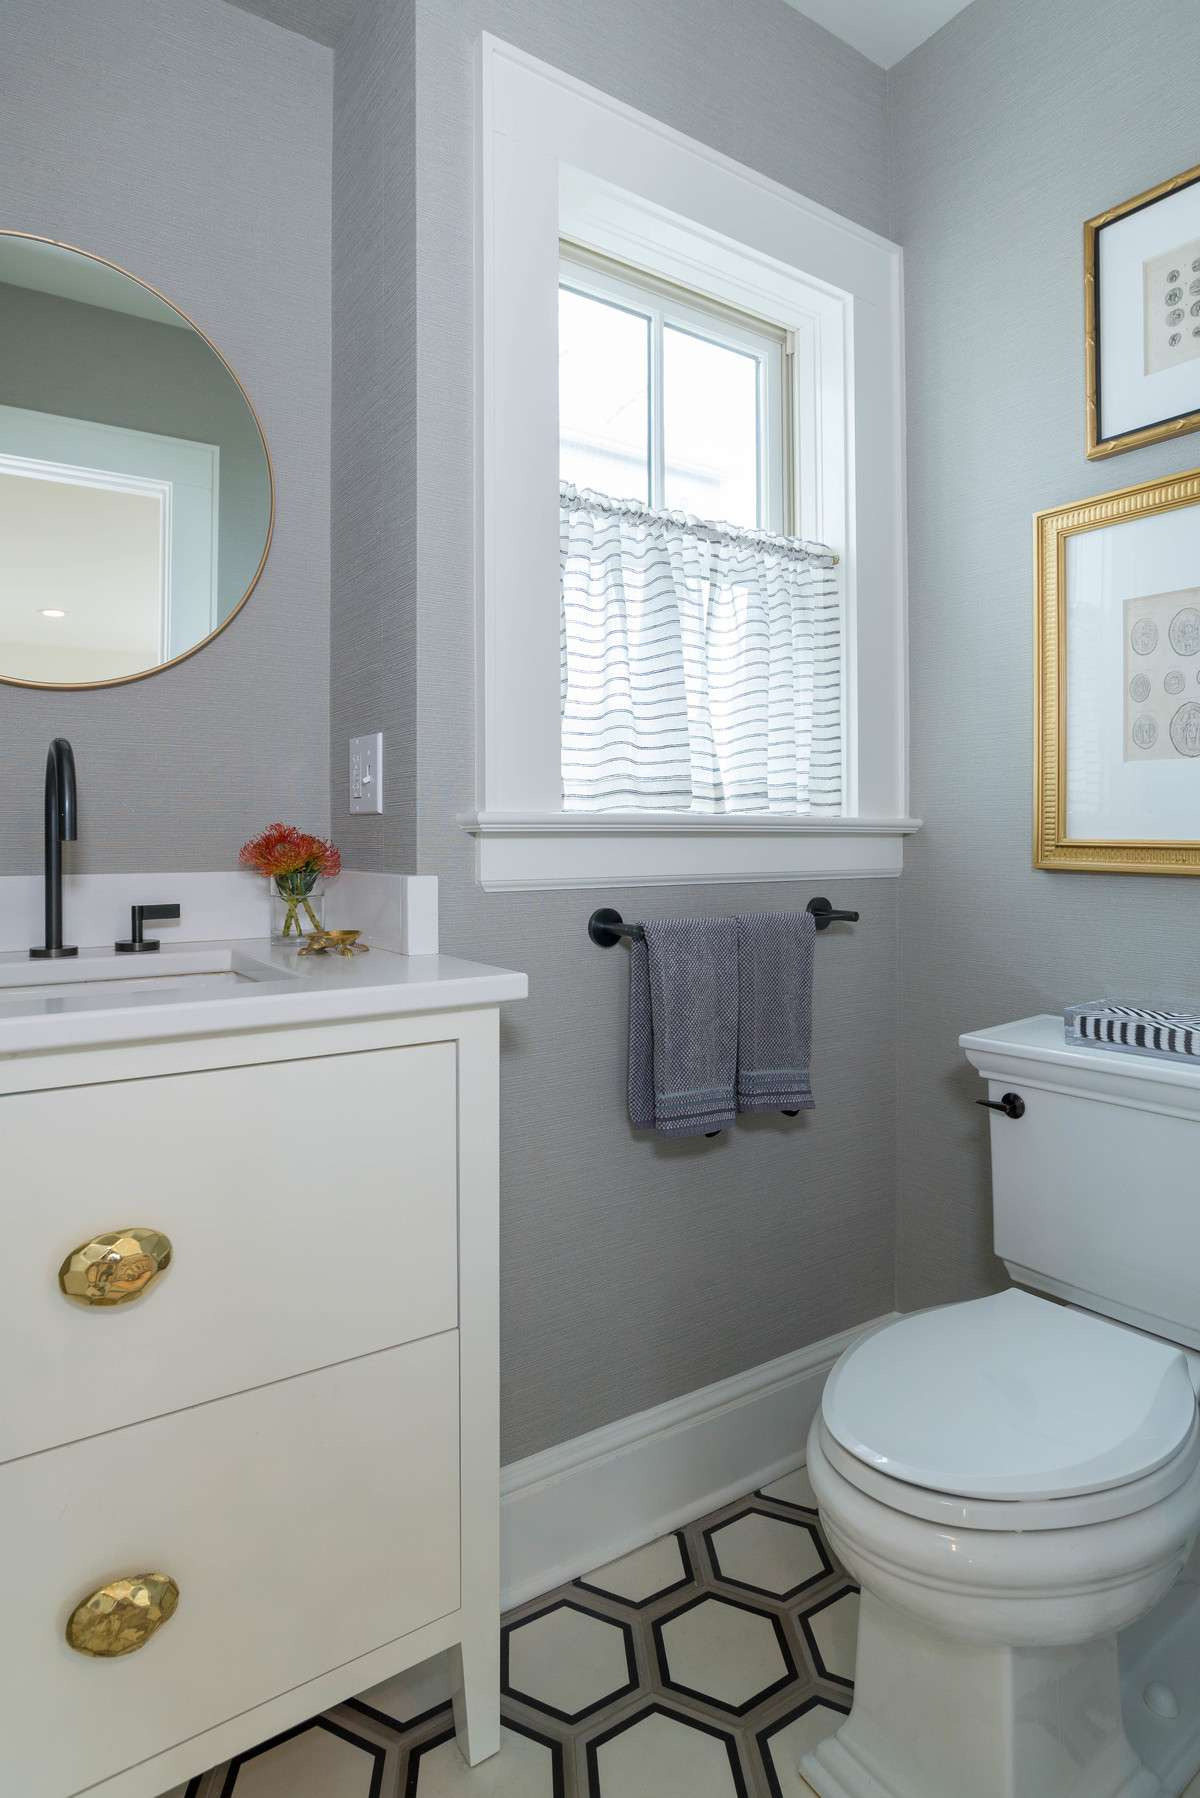 Pics Of Decorated Bathrooms Beautiful Small Bathrooms Brimming with Style and Function